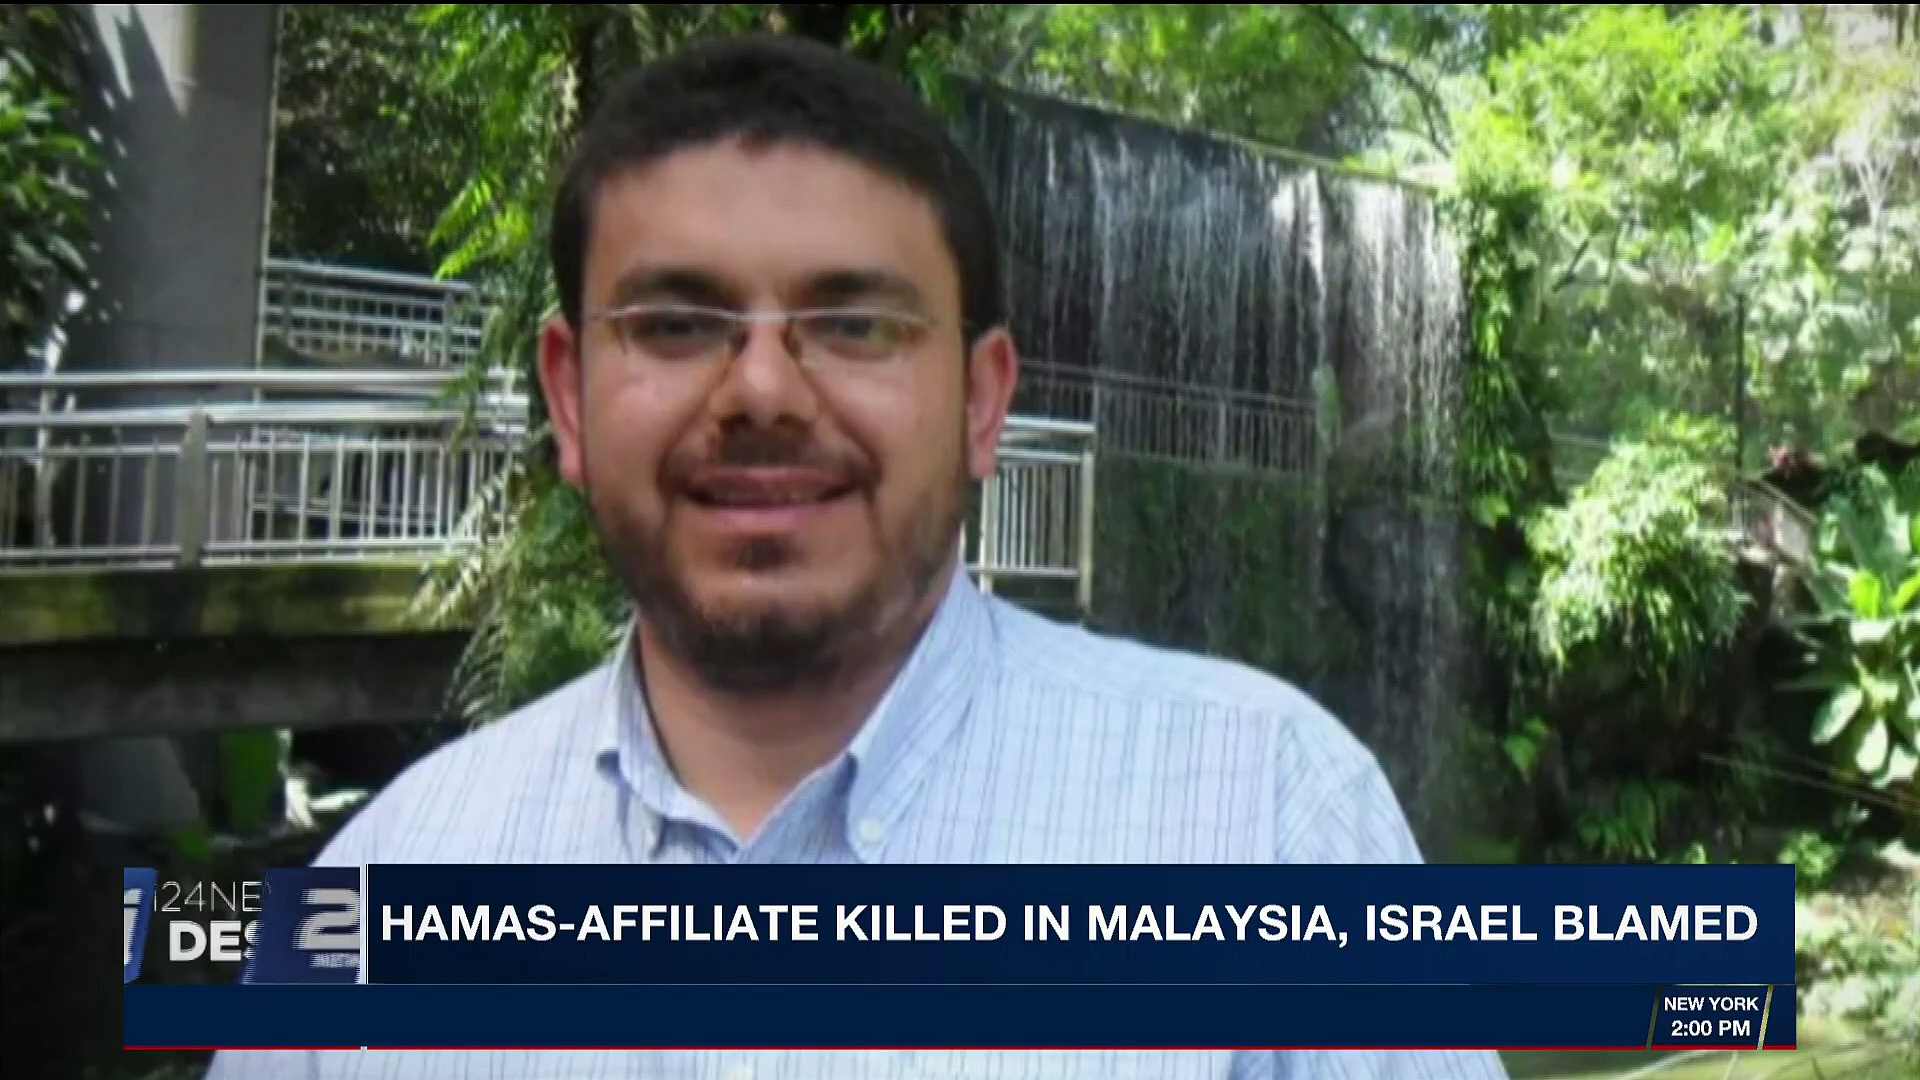 i24NEWS DESK | Hamas-affiliate killed in Malaysia, Israel blamed | Saturday, April 21st 2018